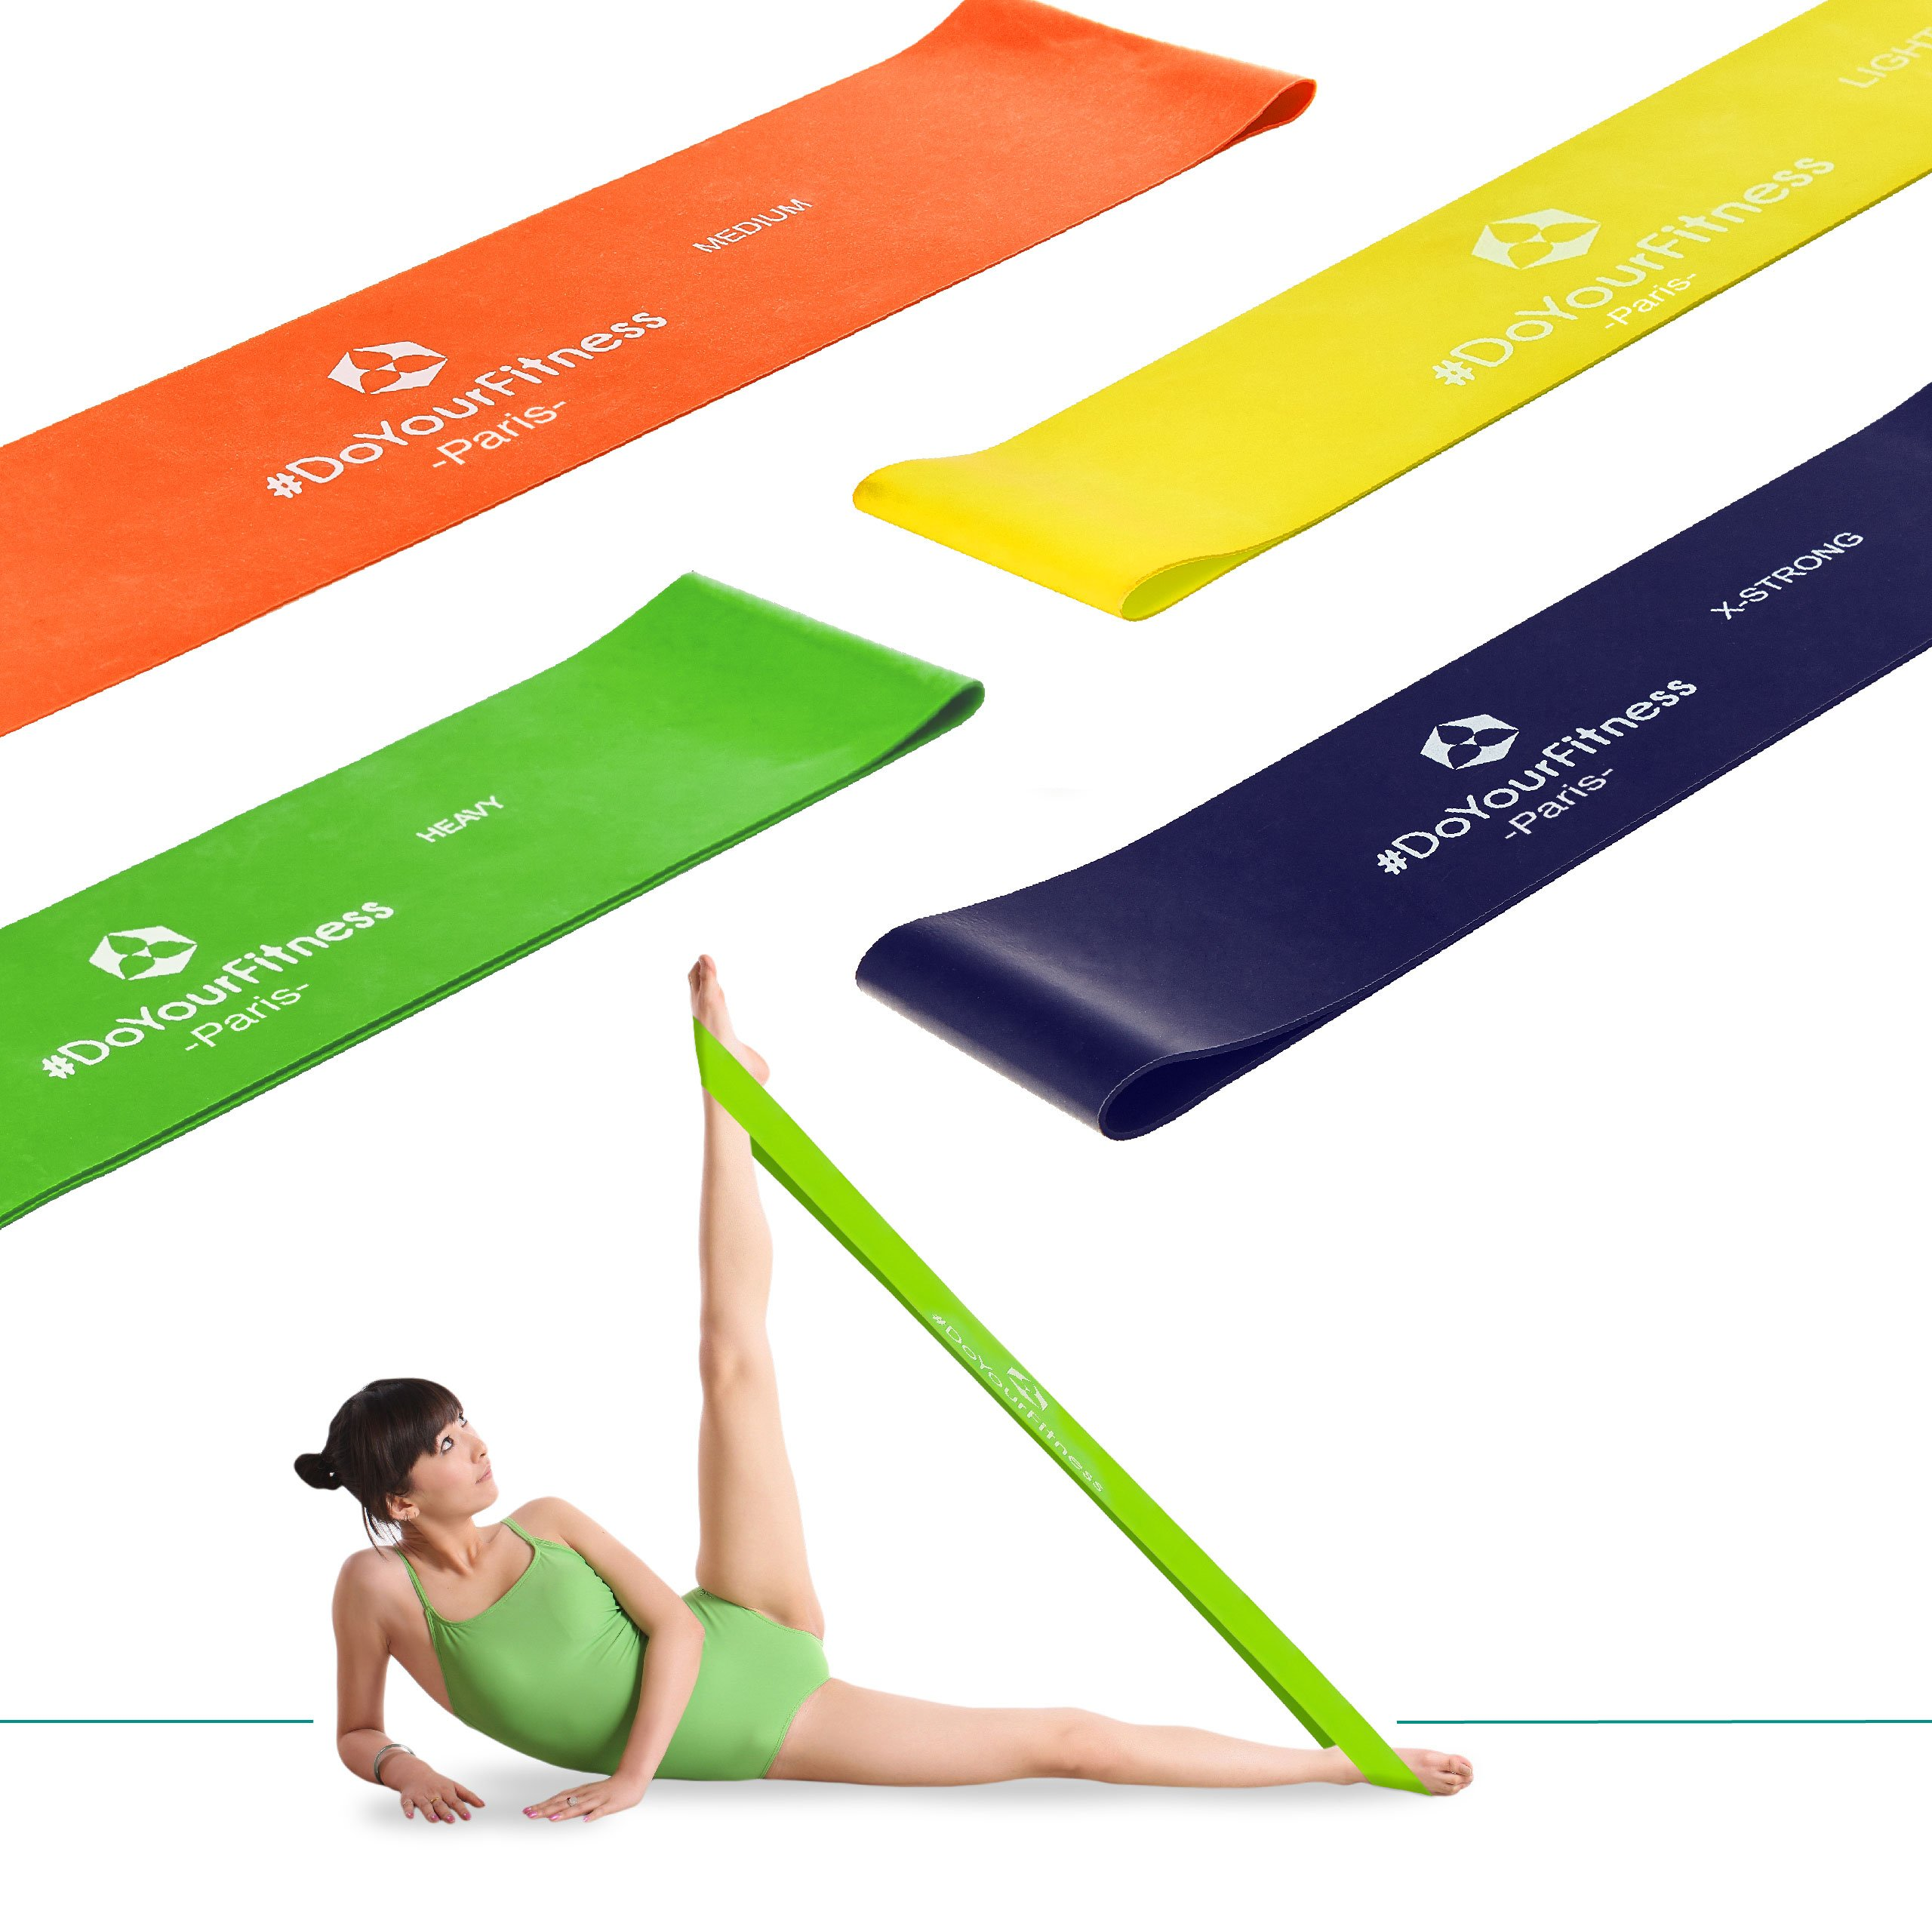 #DoYourFitness Set of 5 Loops Exercise Resistance Bands for Home Workout, Pilates, Yoga, Rehab, Physical Therapy with…